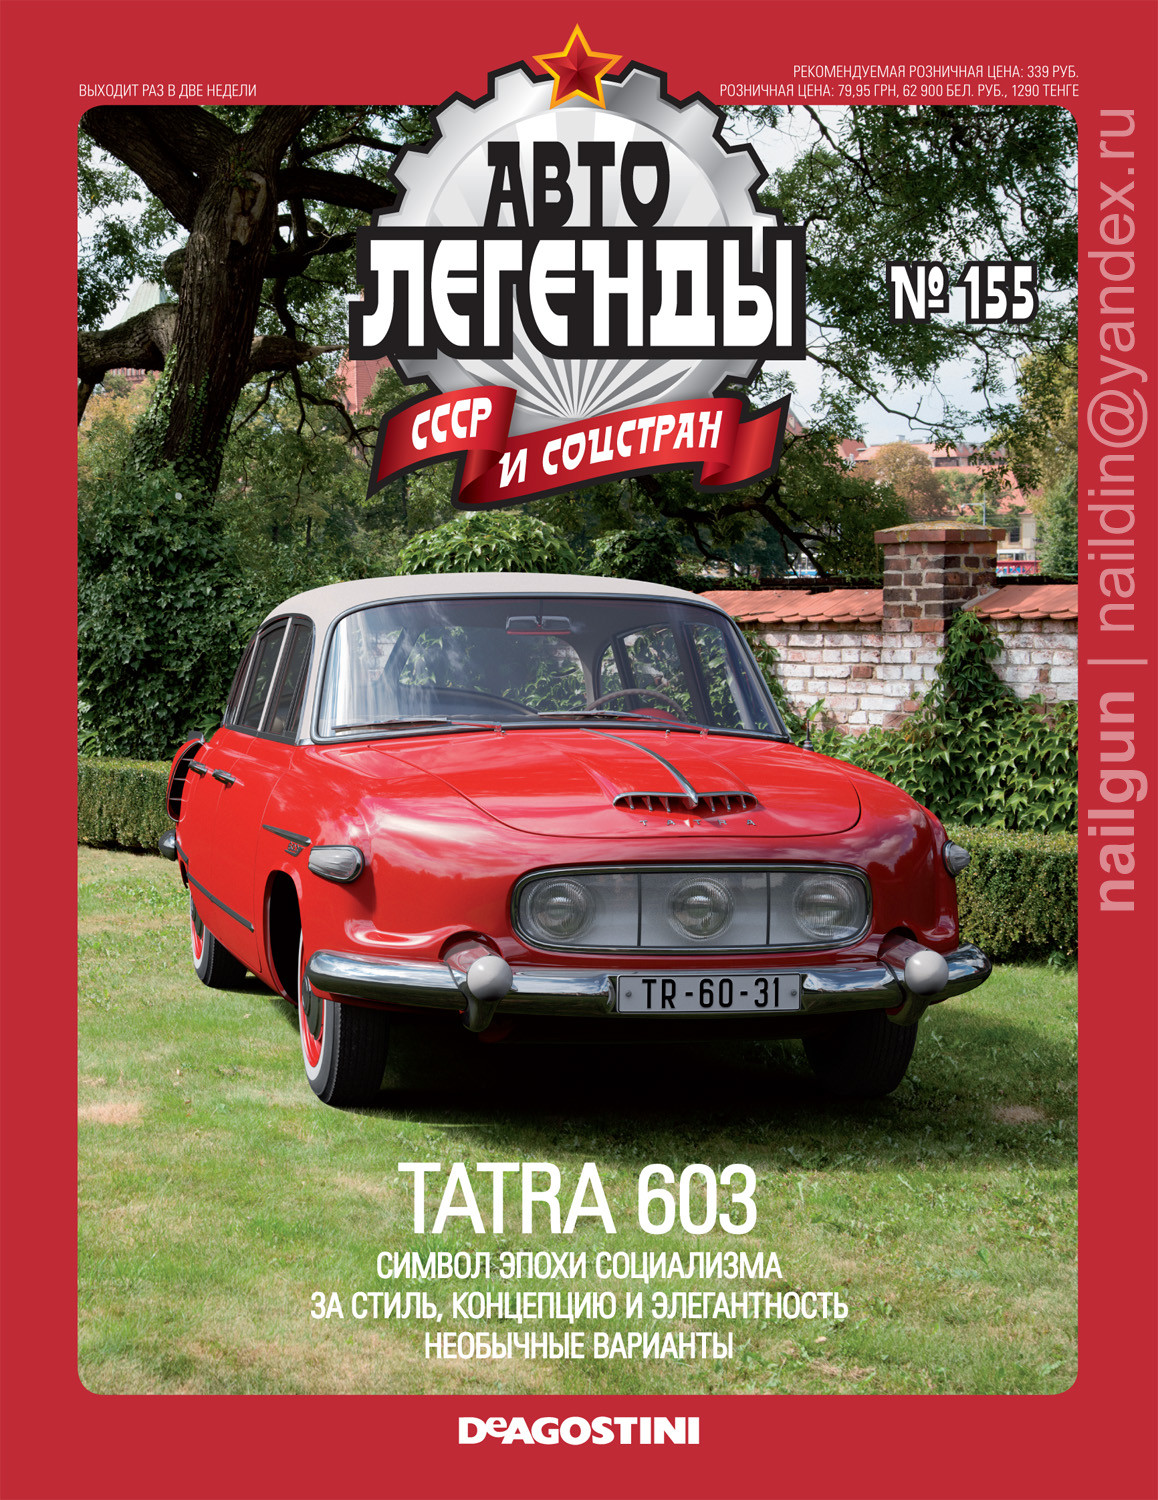 Nail khusnutdinov cars issue 155 hires 1